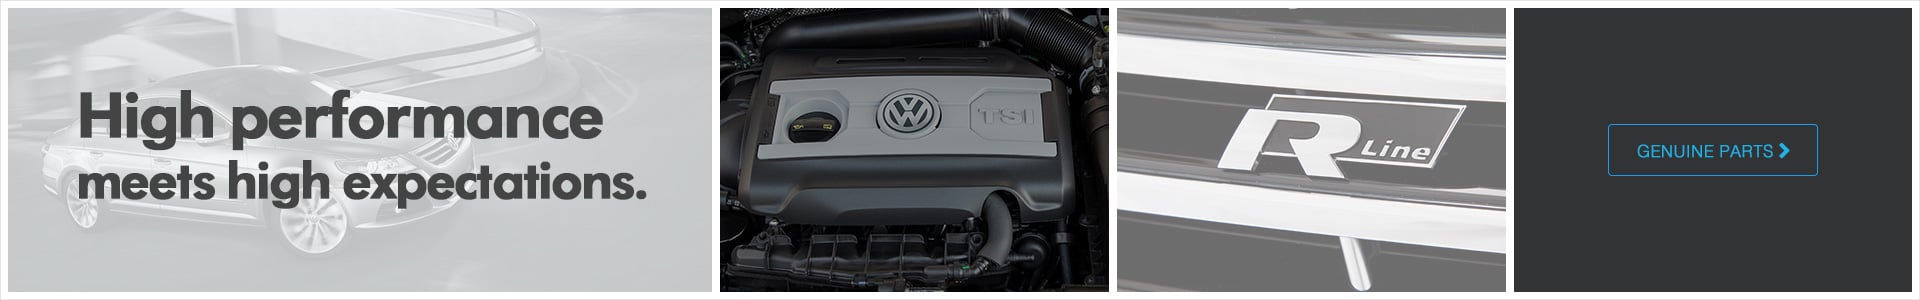 Volkswagen Genuine Parts